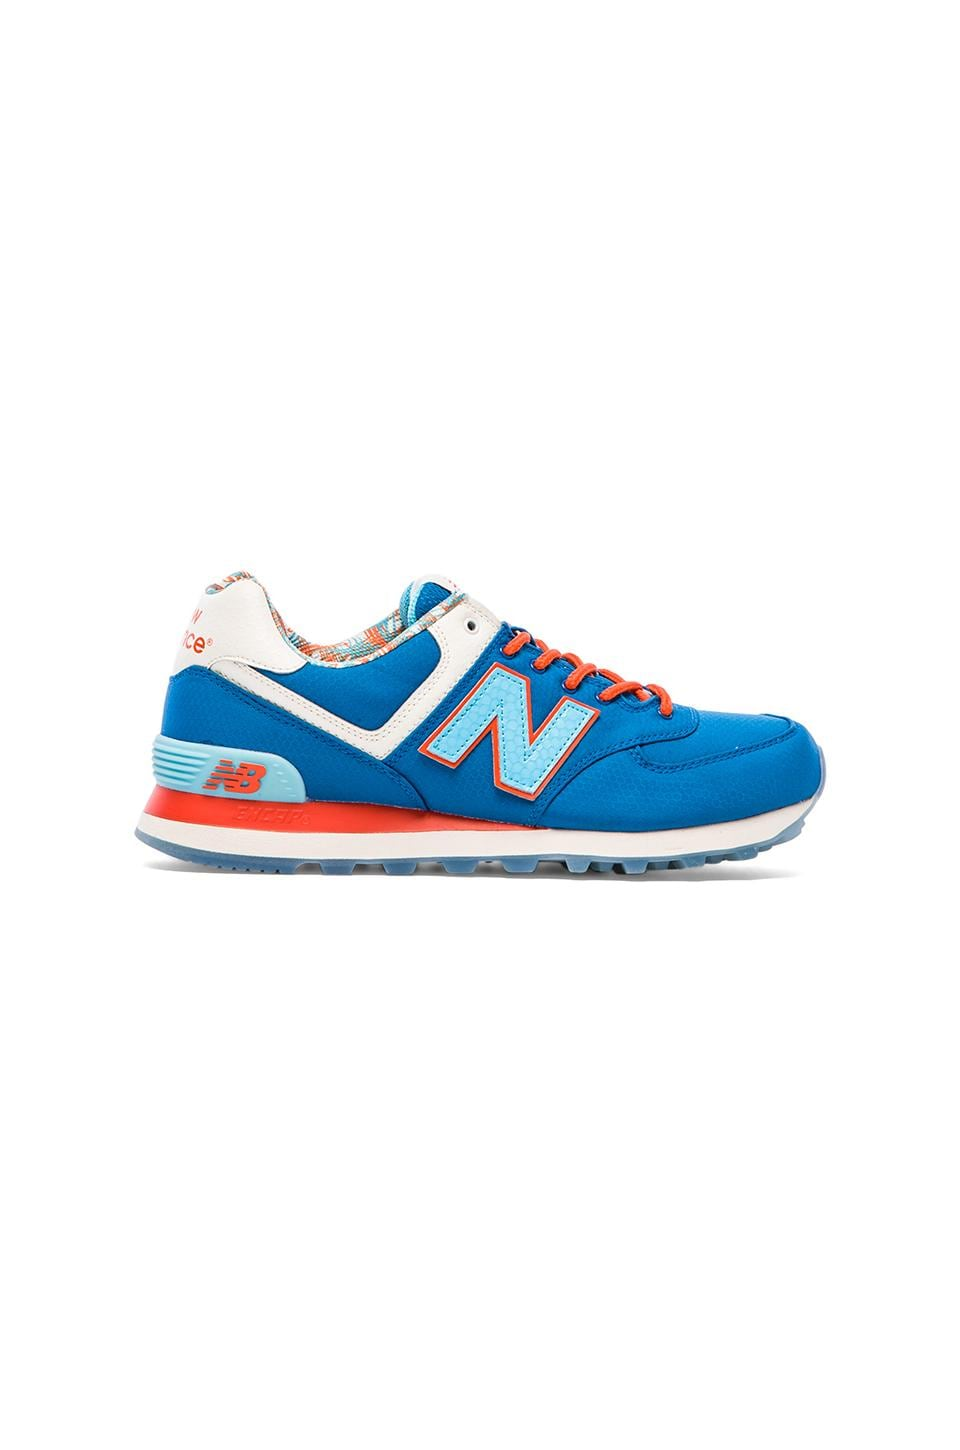 New Balance Island Pack ML574 in Blue